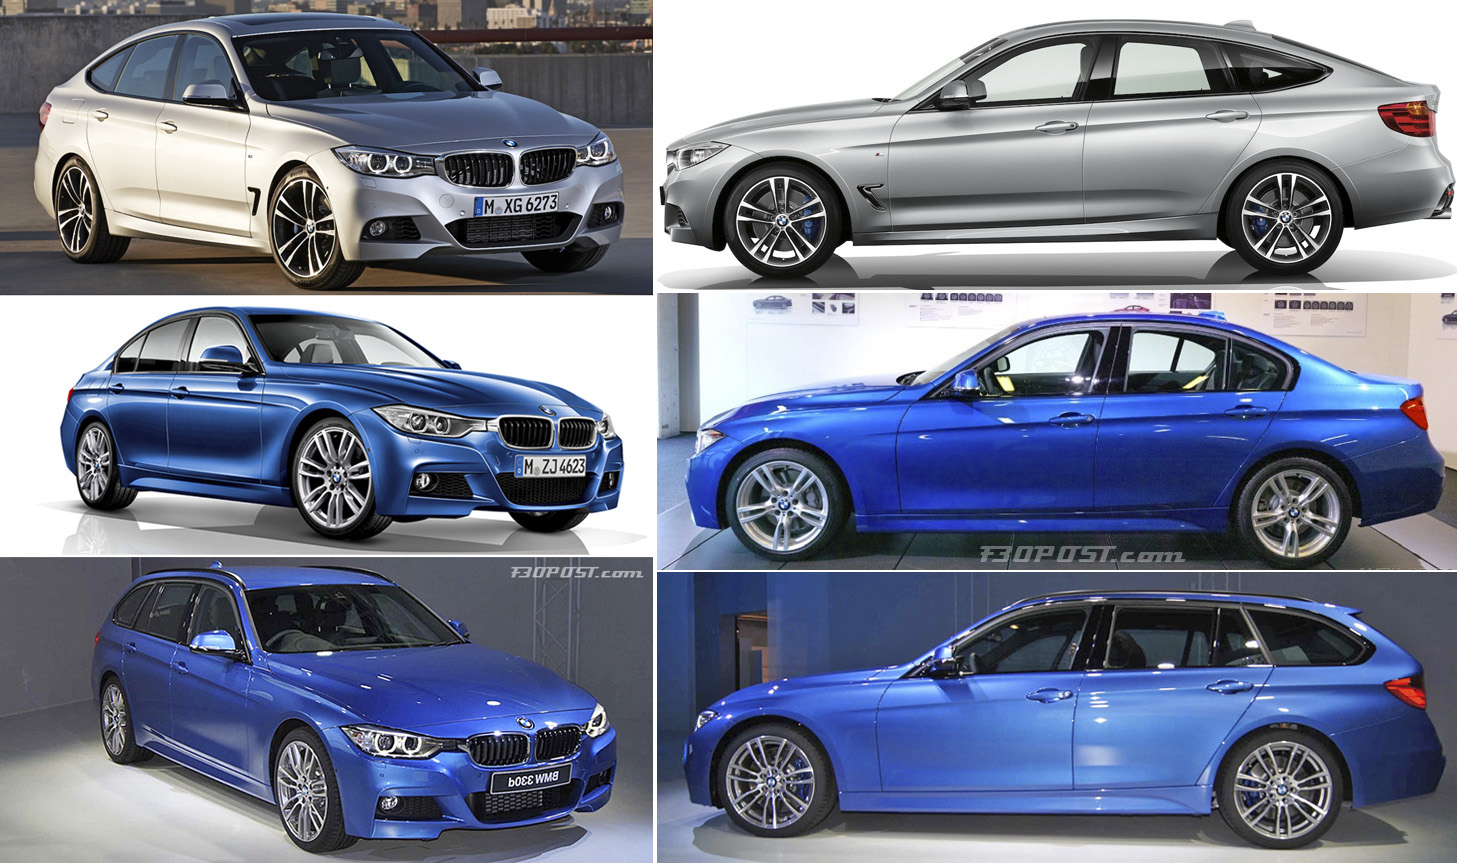 Bmw 3 Series Gt Vs Sedan Vs Touring Visual Comparison